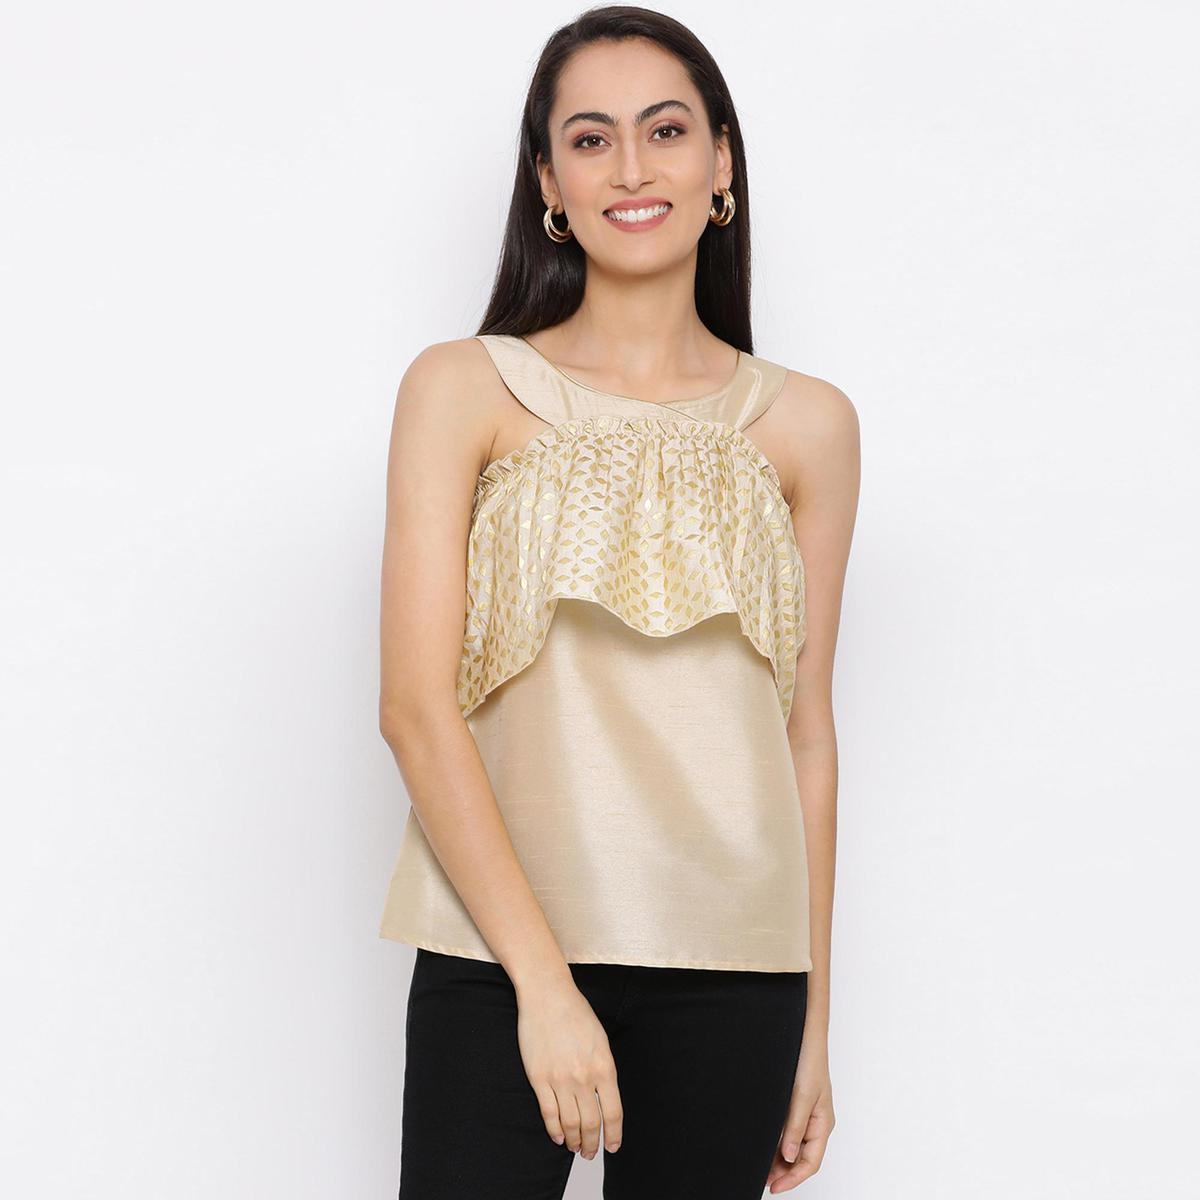 DRAAX FASHIONS - Women Golden Embellished Solid Top